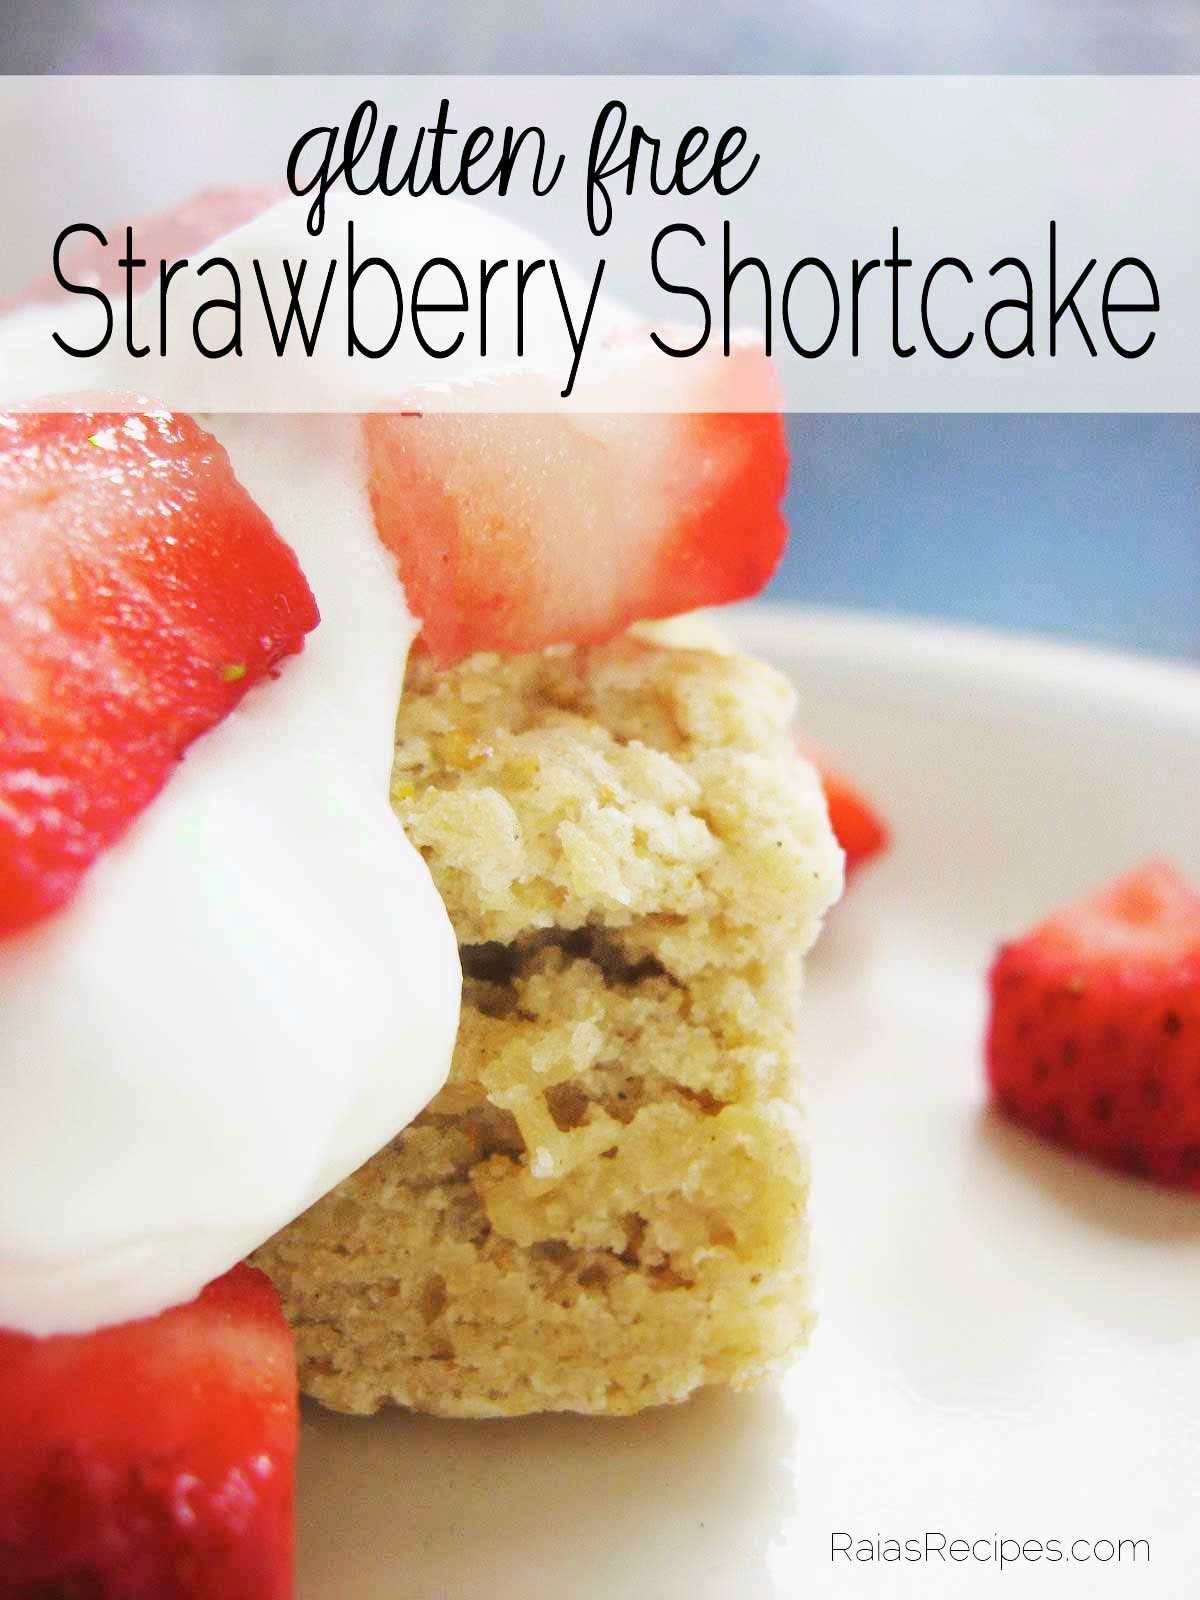 Gluten Free Strawberry Shortcake by RaiasRecipes.com